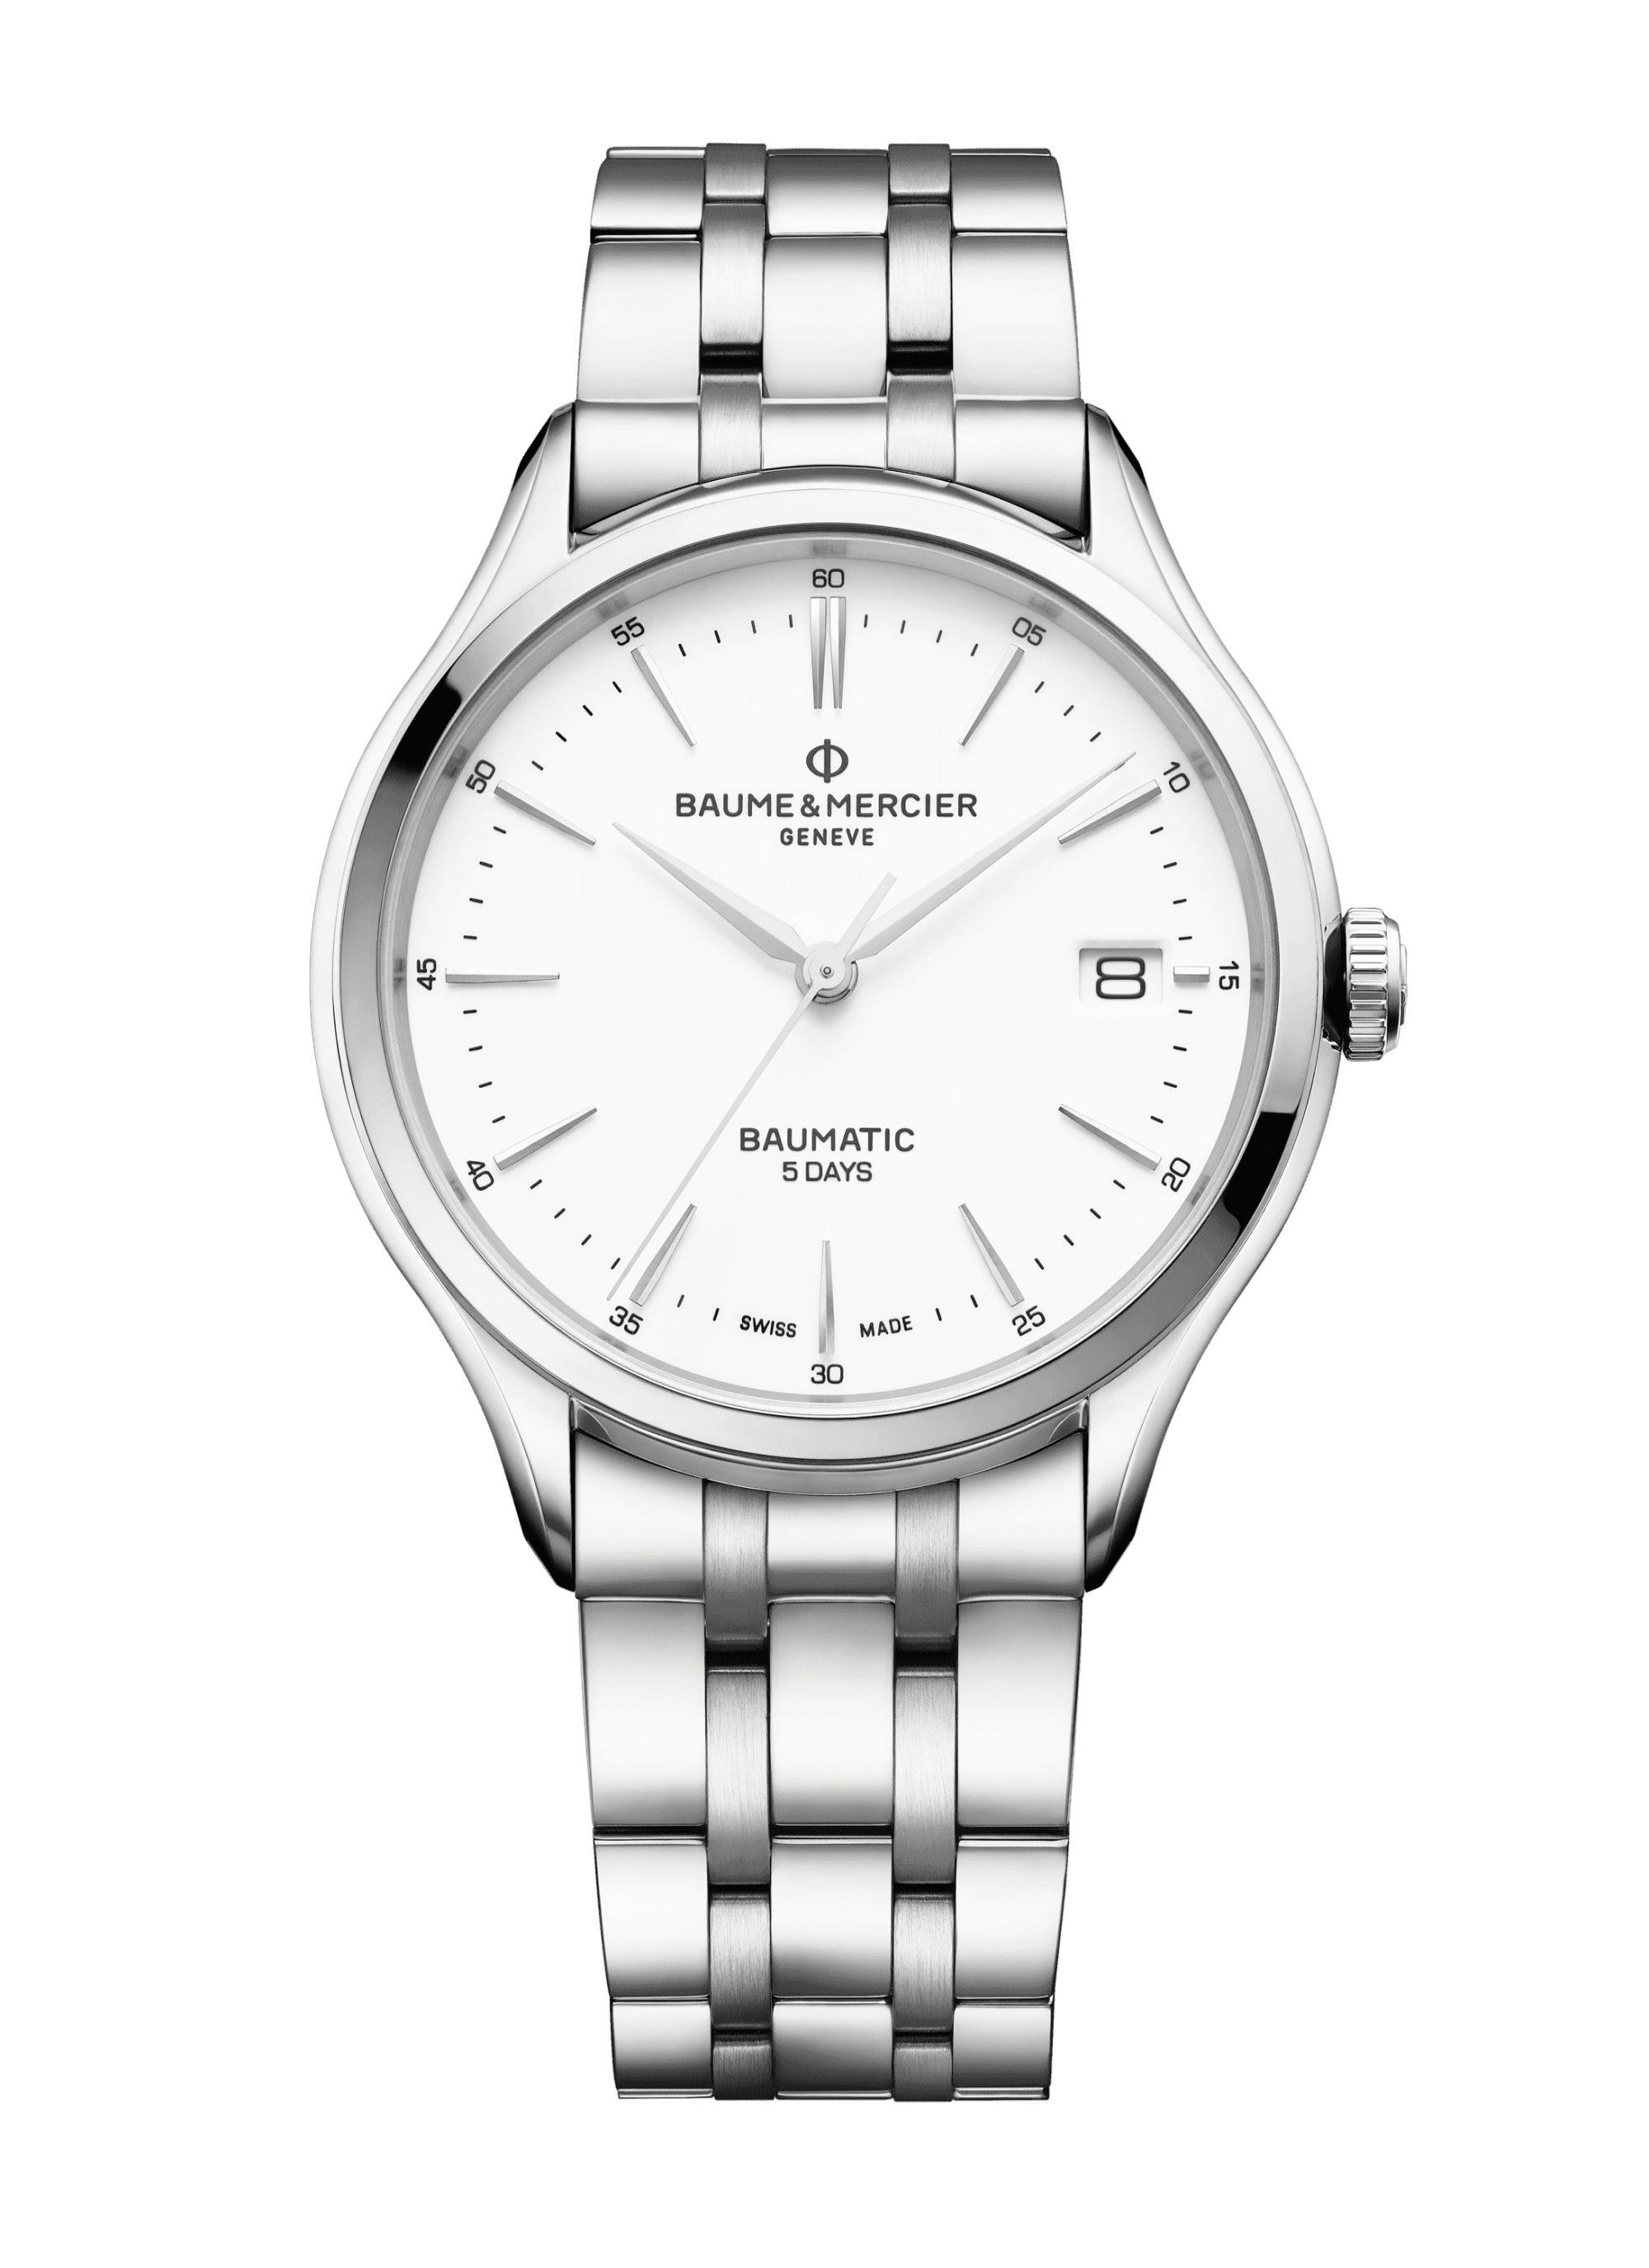 Clifton Baumatic 10400 Watch for men | Check Prices on Baume & Mercier Front -